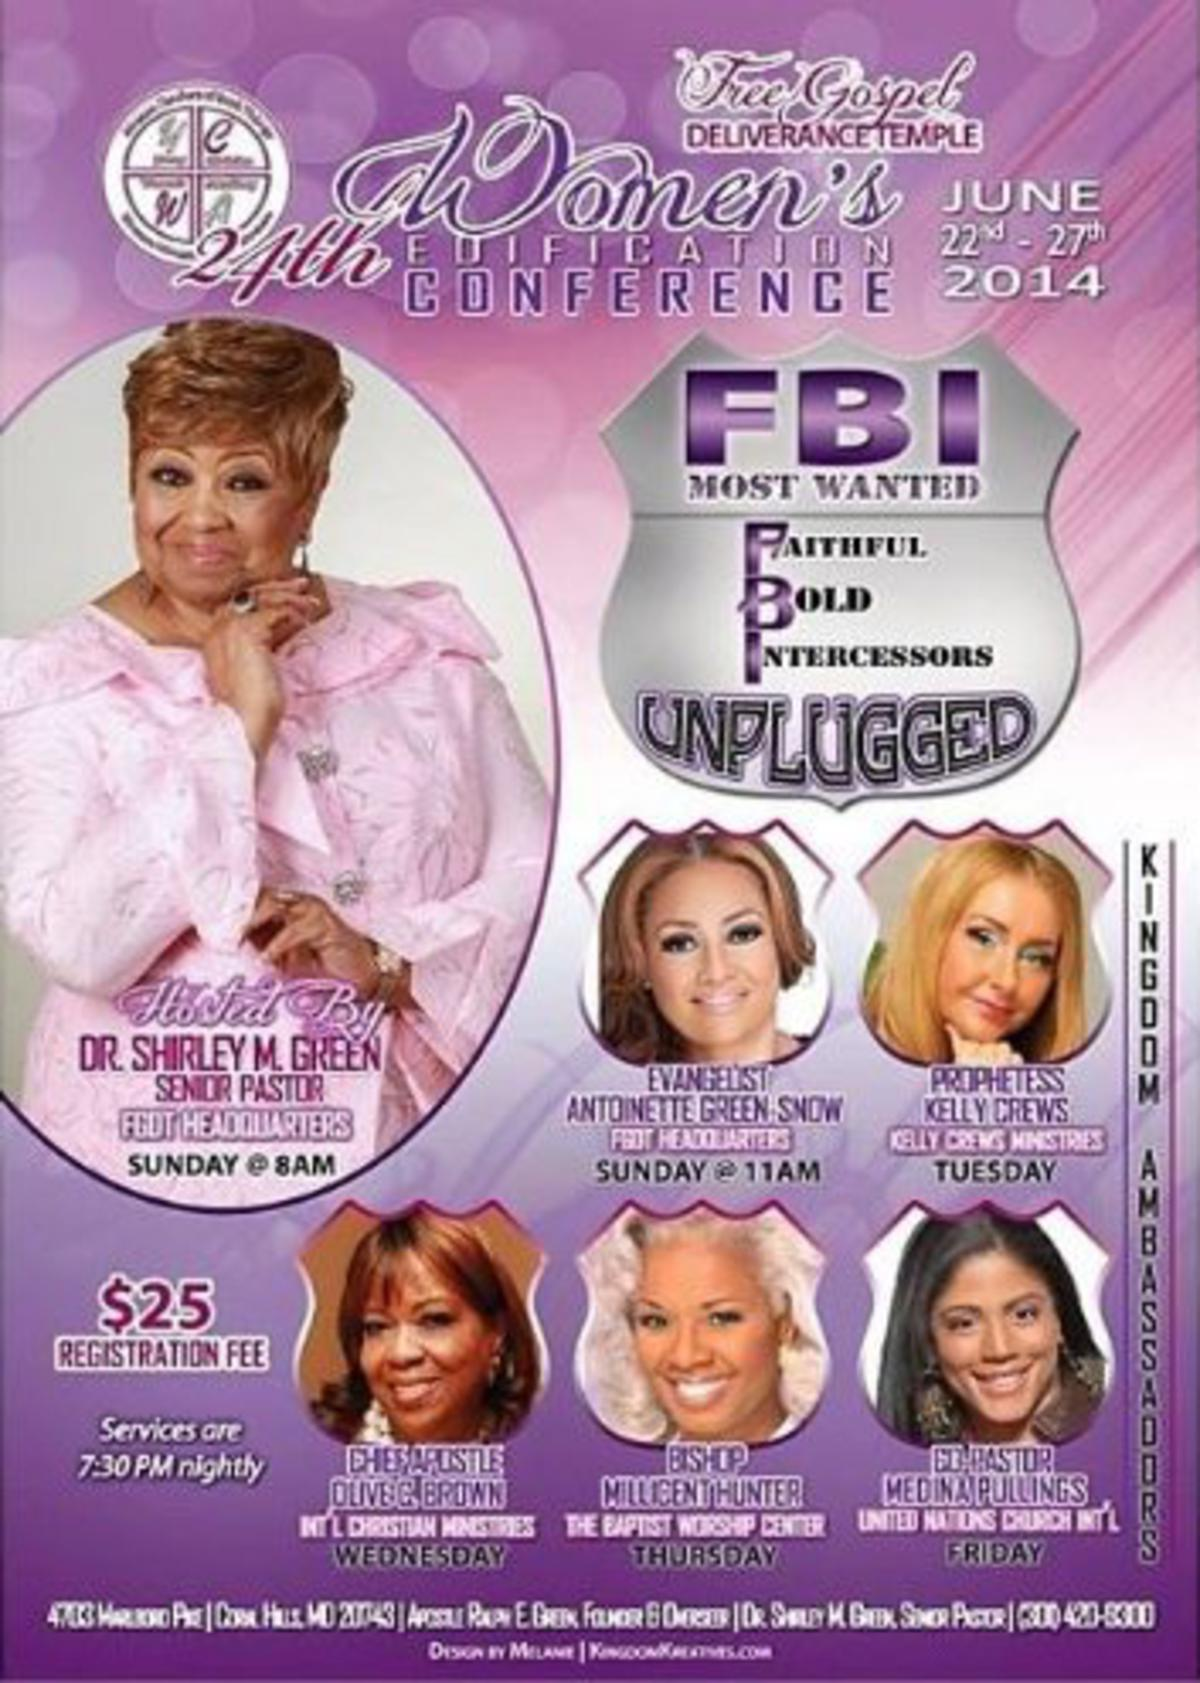 Chief Apostle Olive Brown is speaking in Maryland!